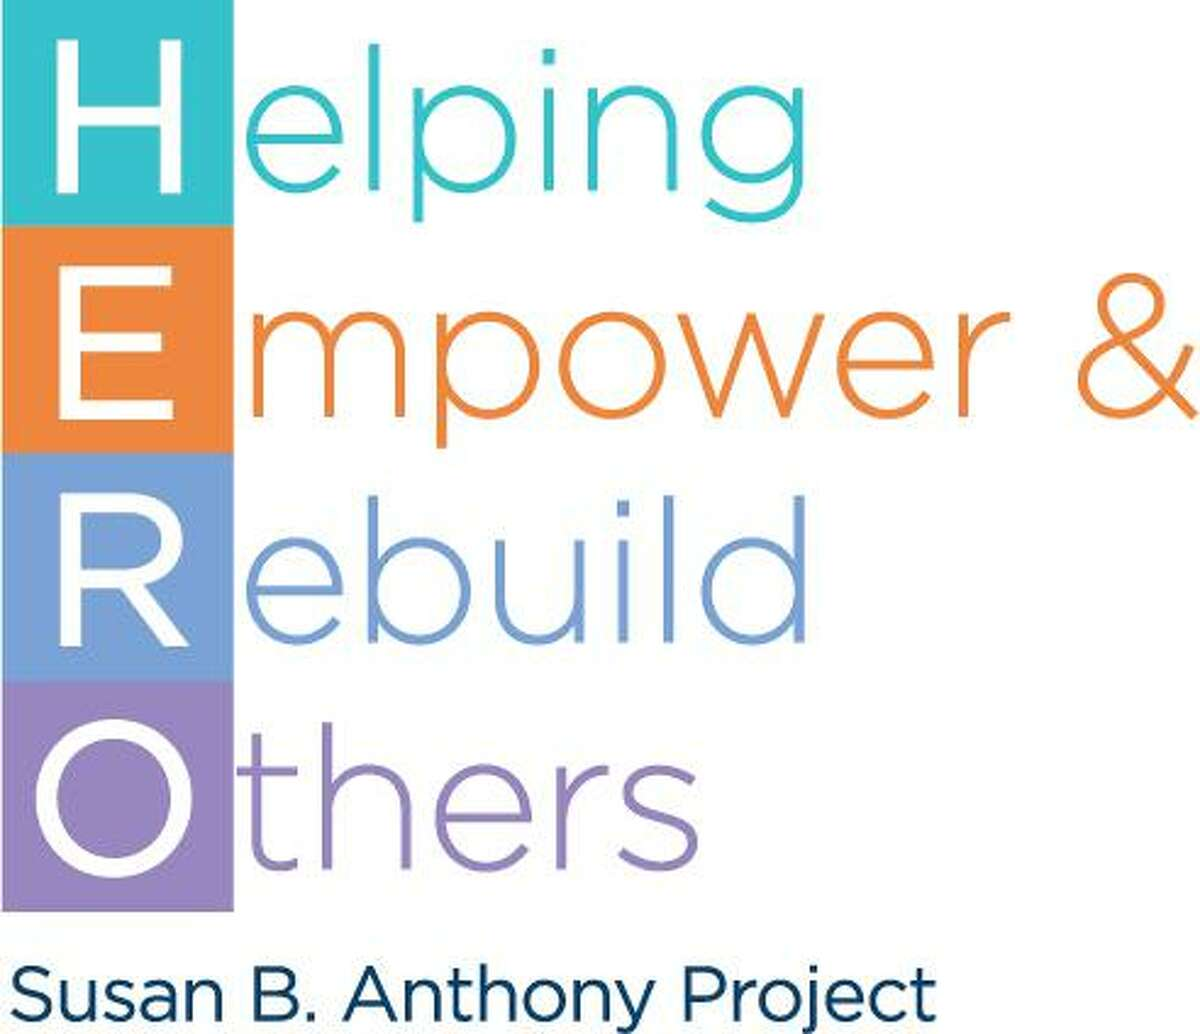 Susan. B. Anthony Project's HERO Program offers an opportunity for local businesses, as well as their employees and customers, to make a difference in the lives of those experiencing domestic and sexual violence.